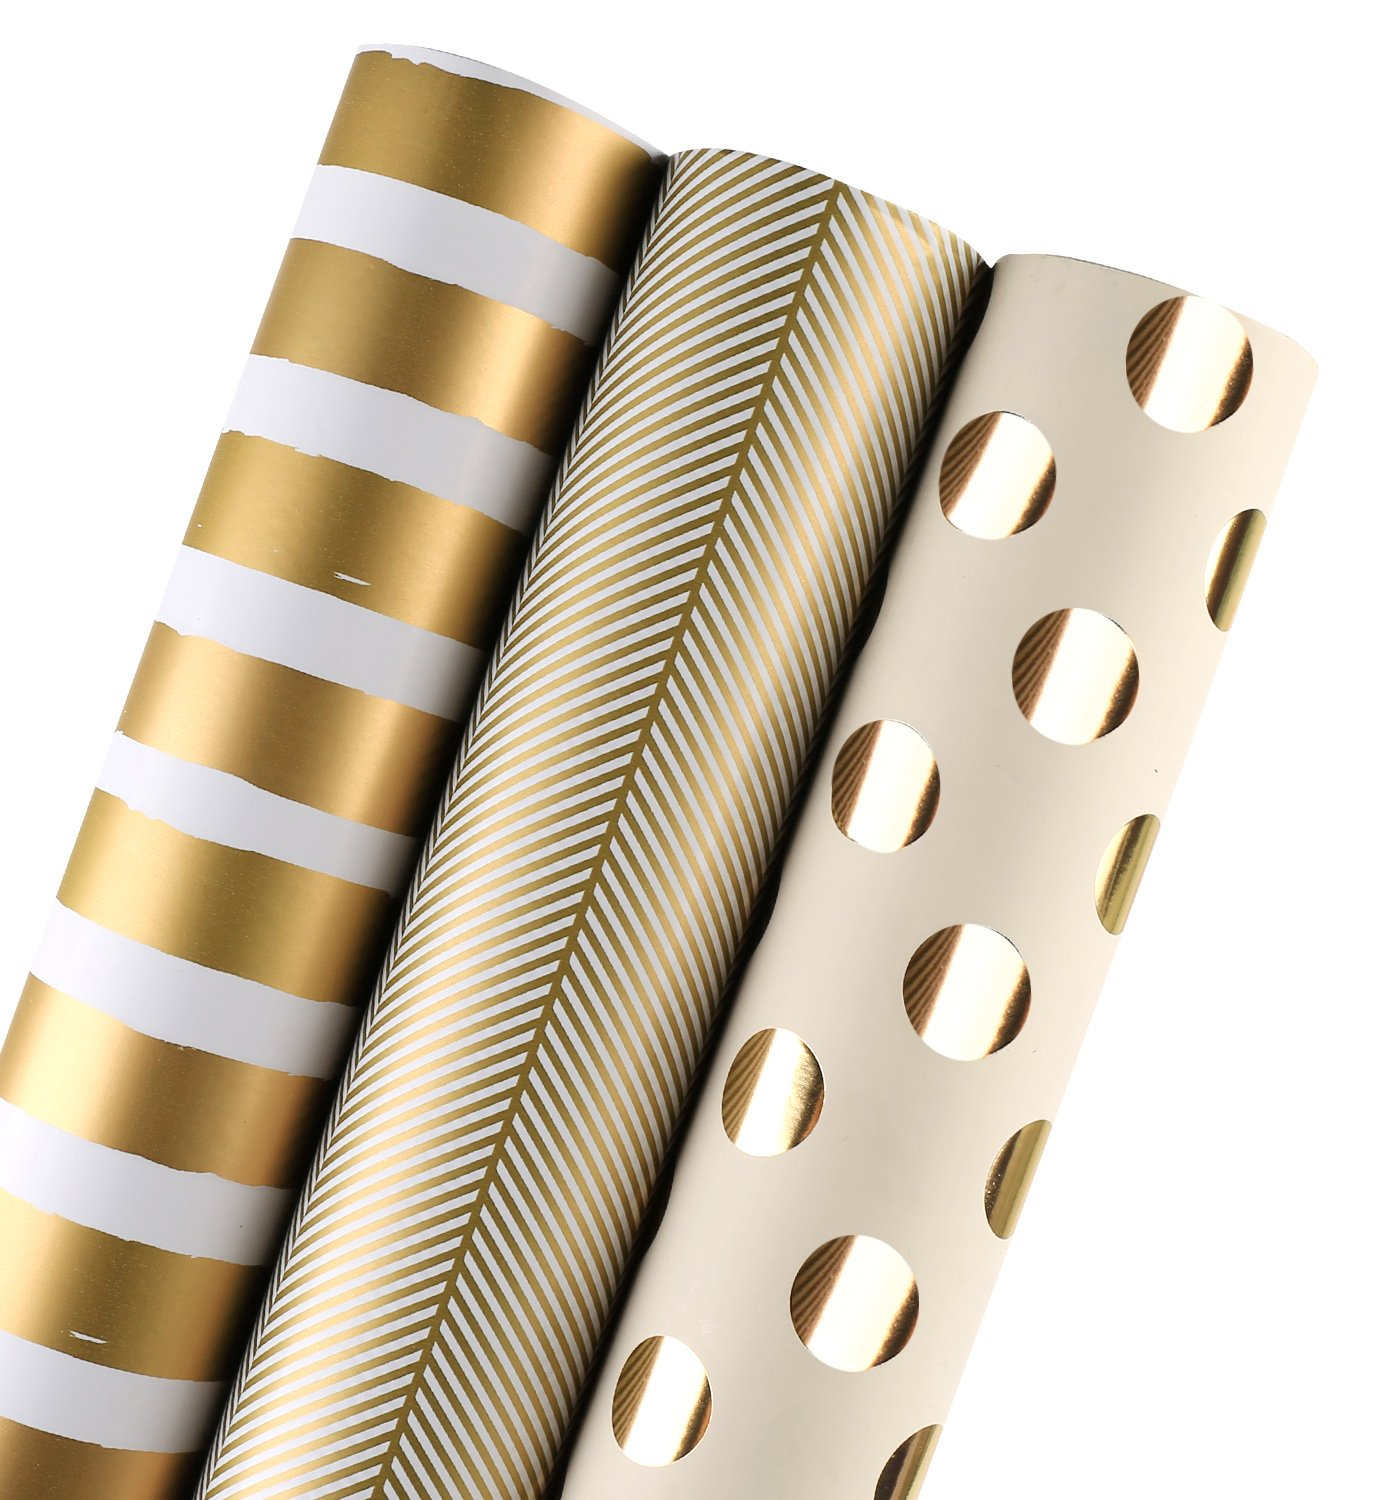 LaRibbons Gift Wrapping Paper Roll - Gold Print for Birthday, Holiday, Wedding, Baby Shower Gift Wrap - 3 Rolls - 30 inch X 120 inch Per Roll by LaRibbons